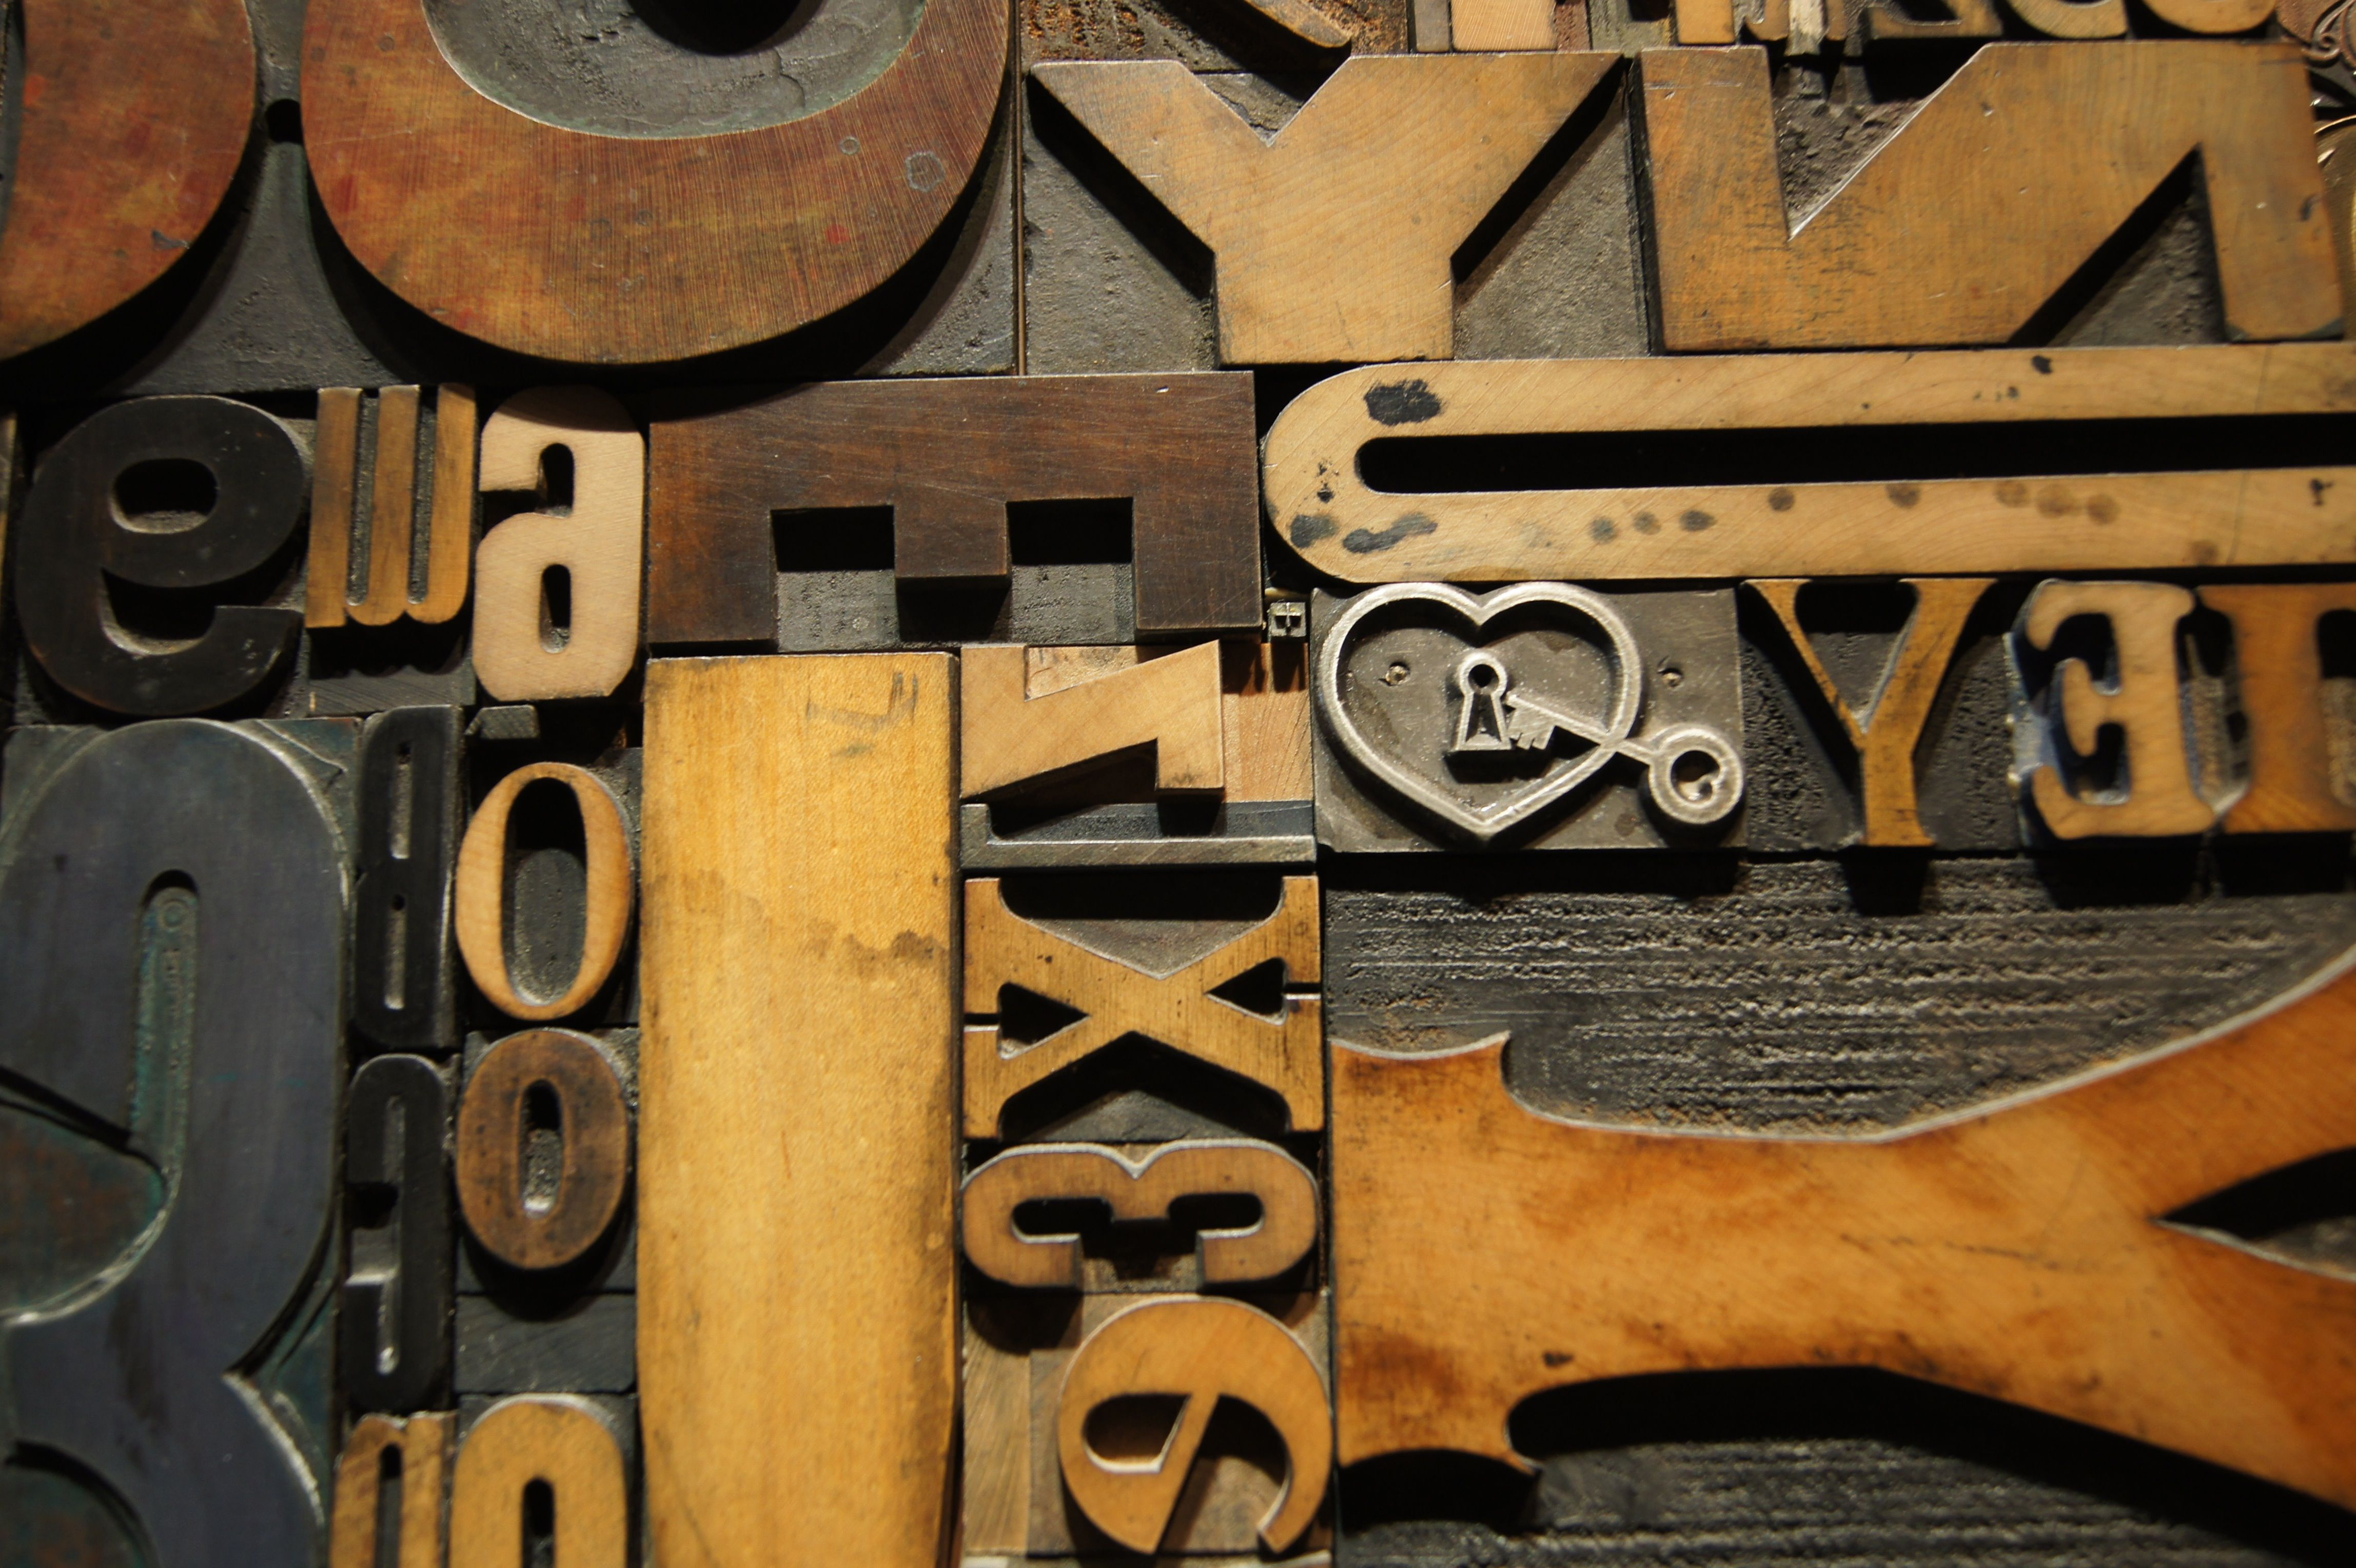 Close up of the pieces of hand-set type used in the Gutenberg's Puzzle artwork in the Newseum in Washington, D.C.